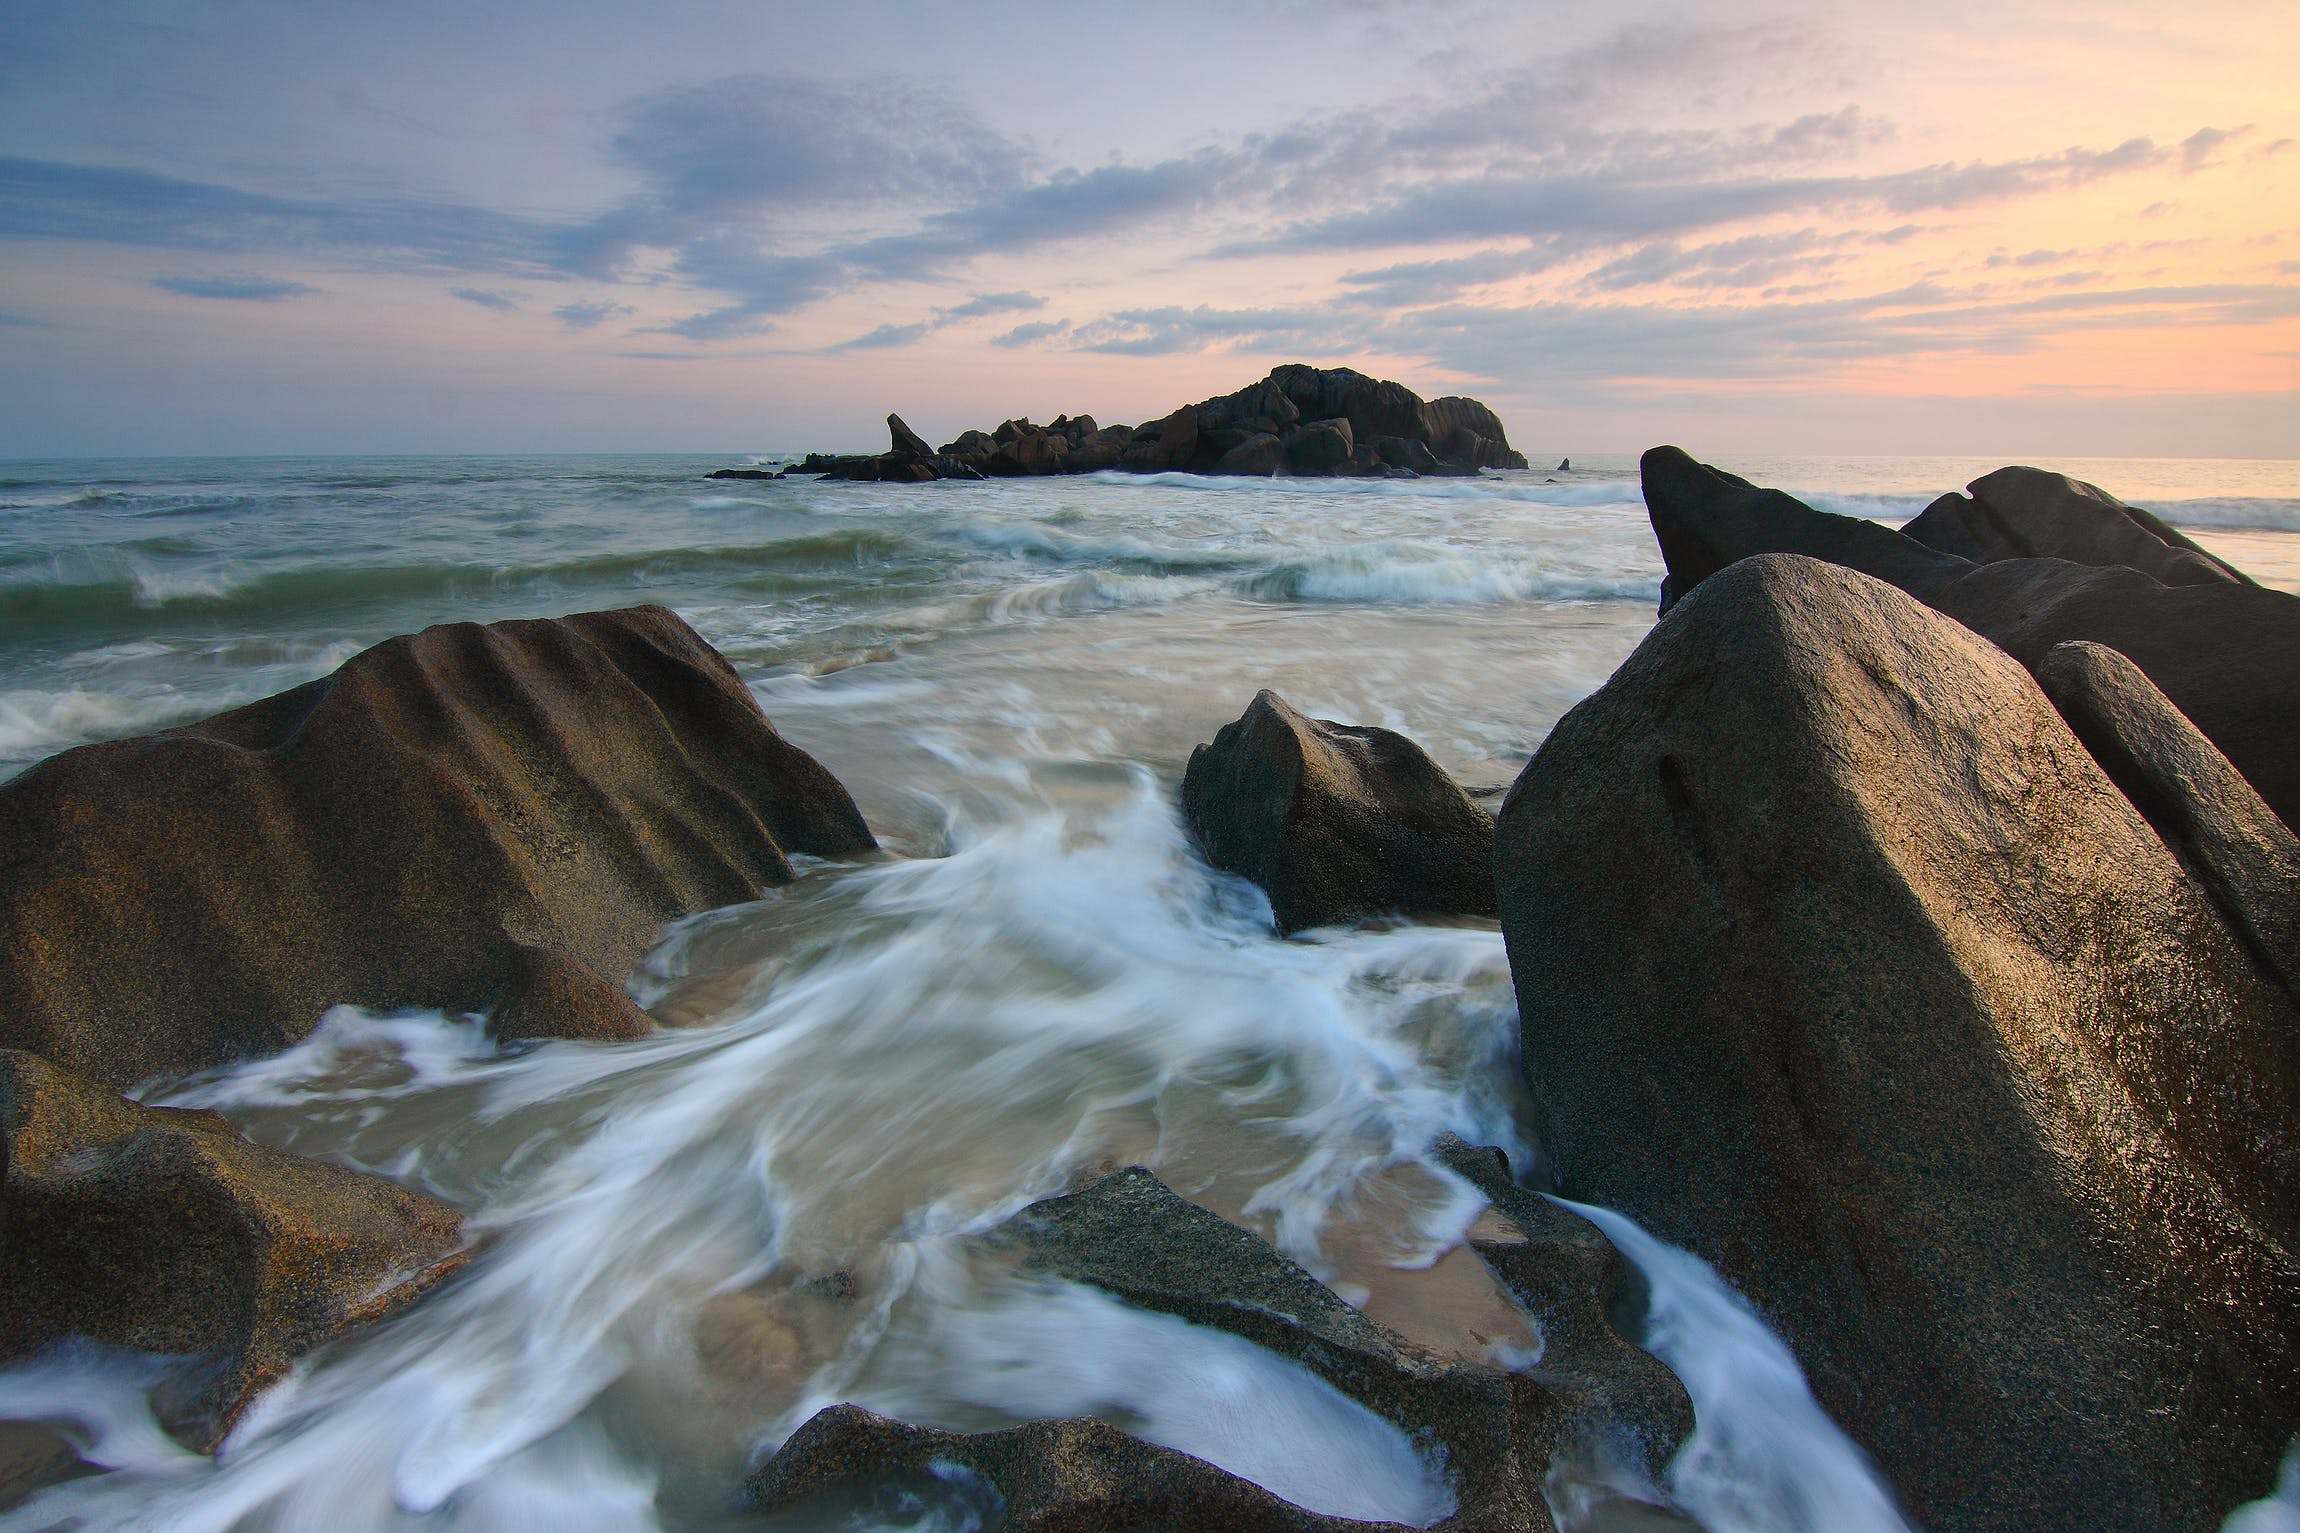 Sea Waves Crashing on Brown Boulders during Golden Hour Time Lapse Photo